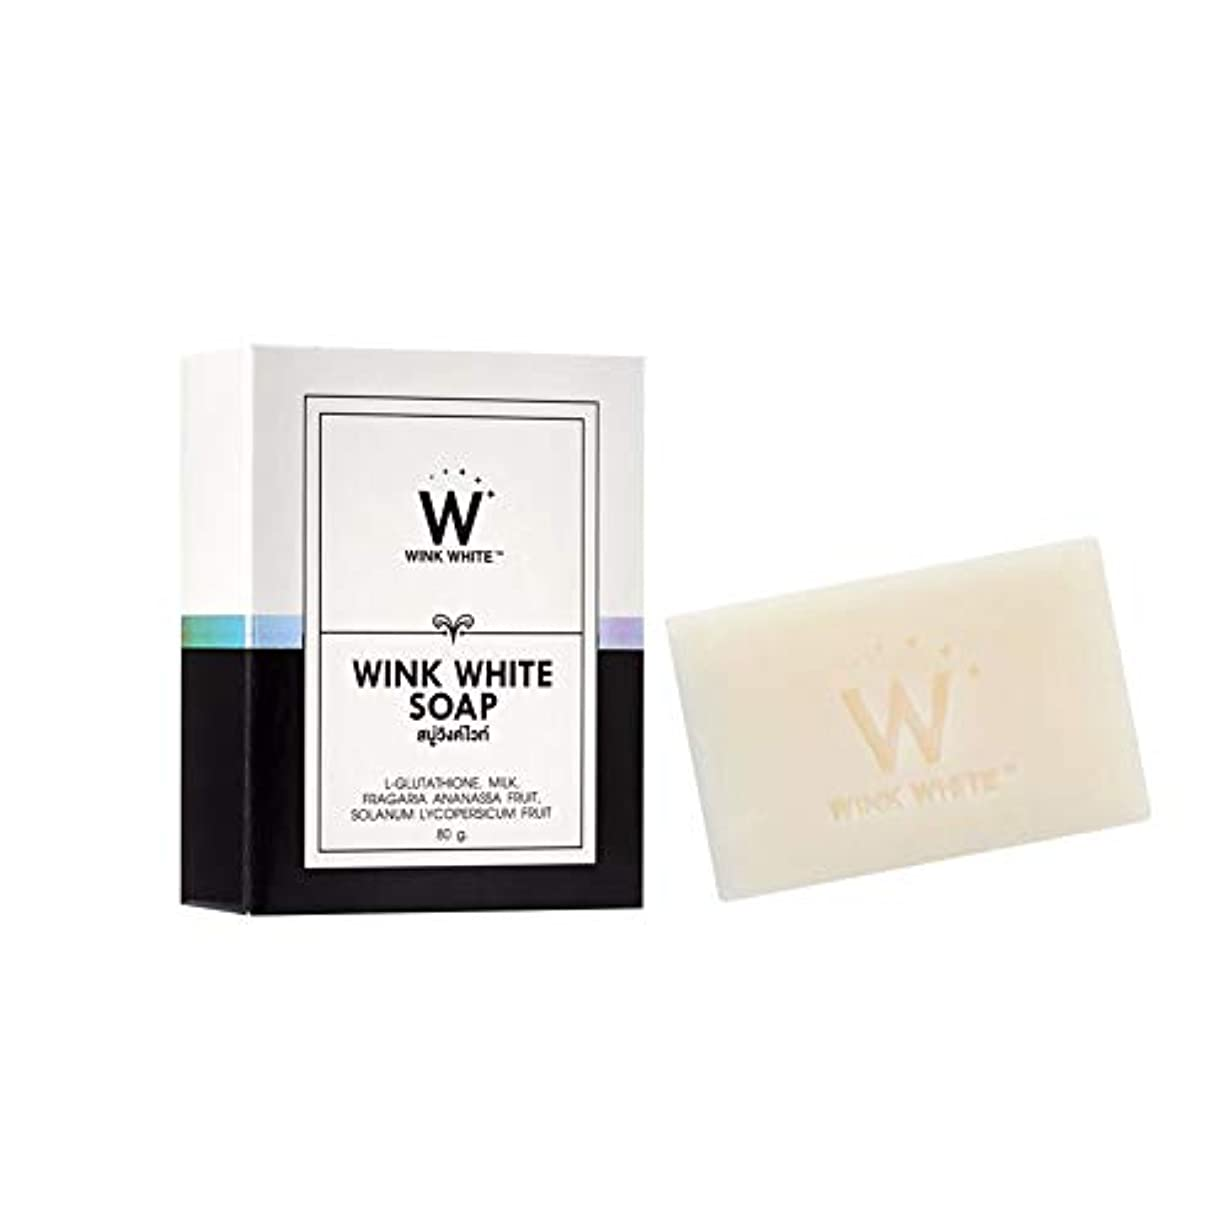 まだら到着するできればSoap Net Nature White Soap Base Wink White Soap Gluta Pure Skin Body Whitening Strawberry for Whitening Skin All...